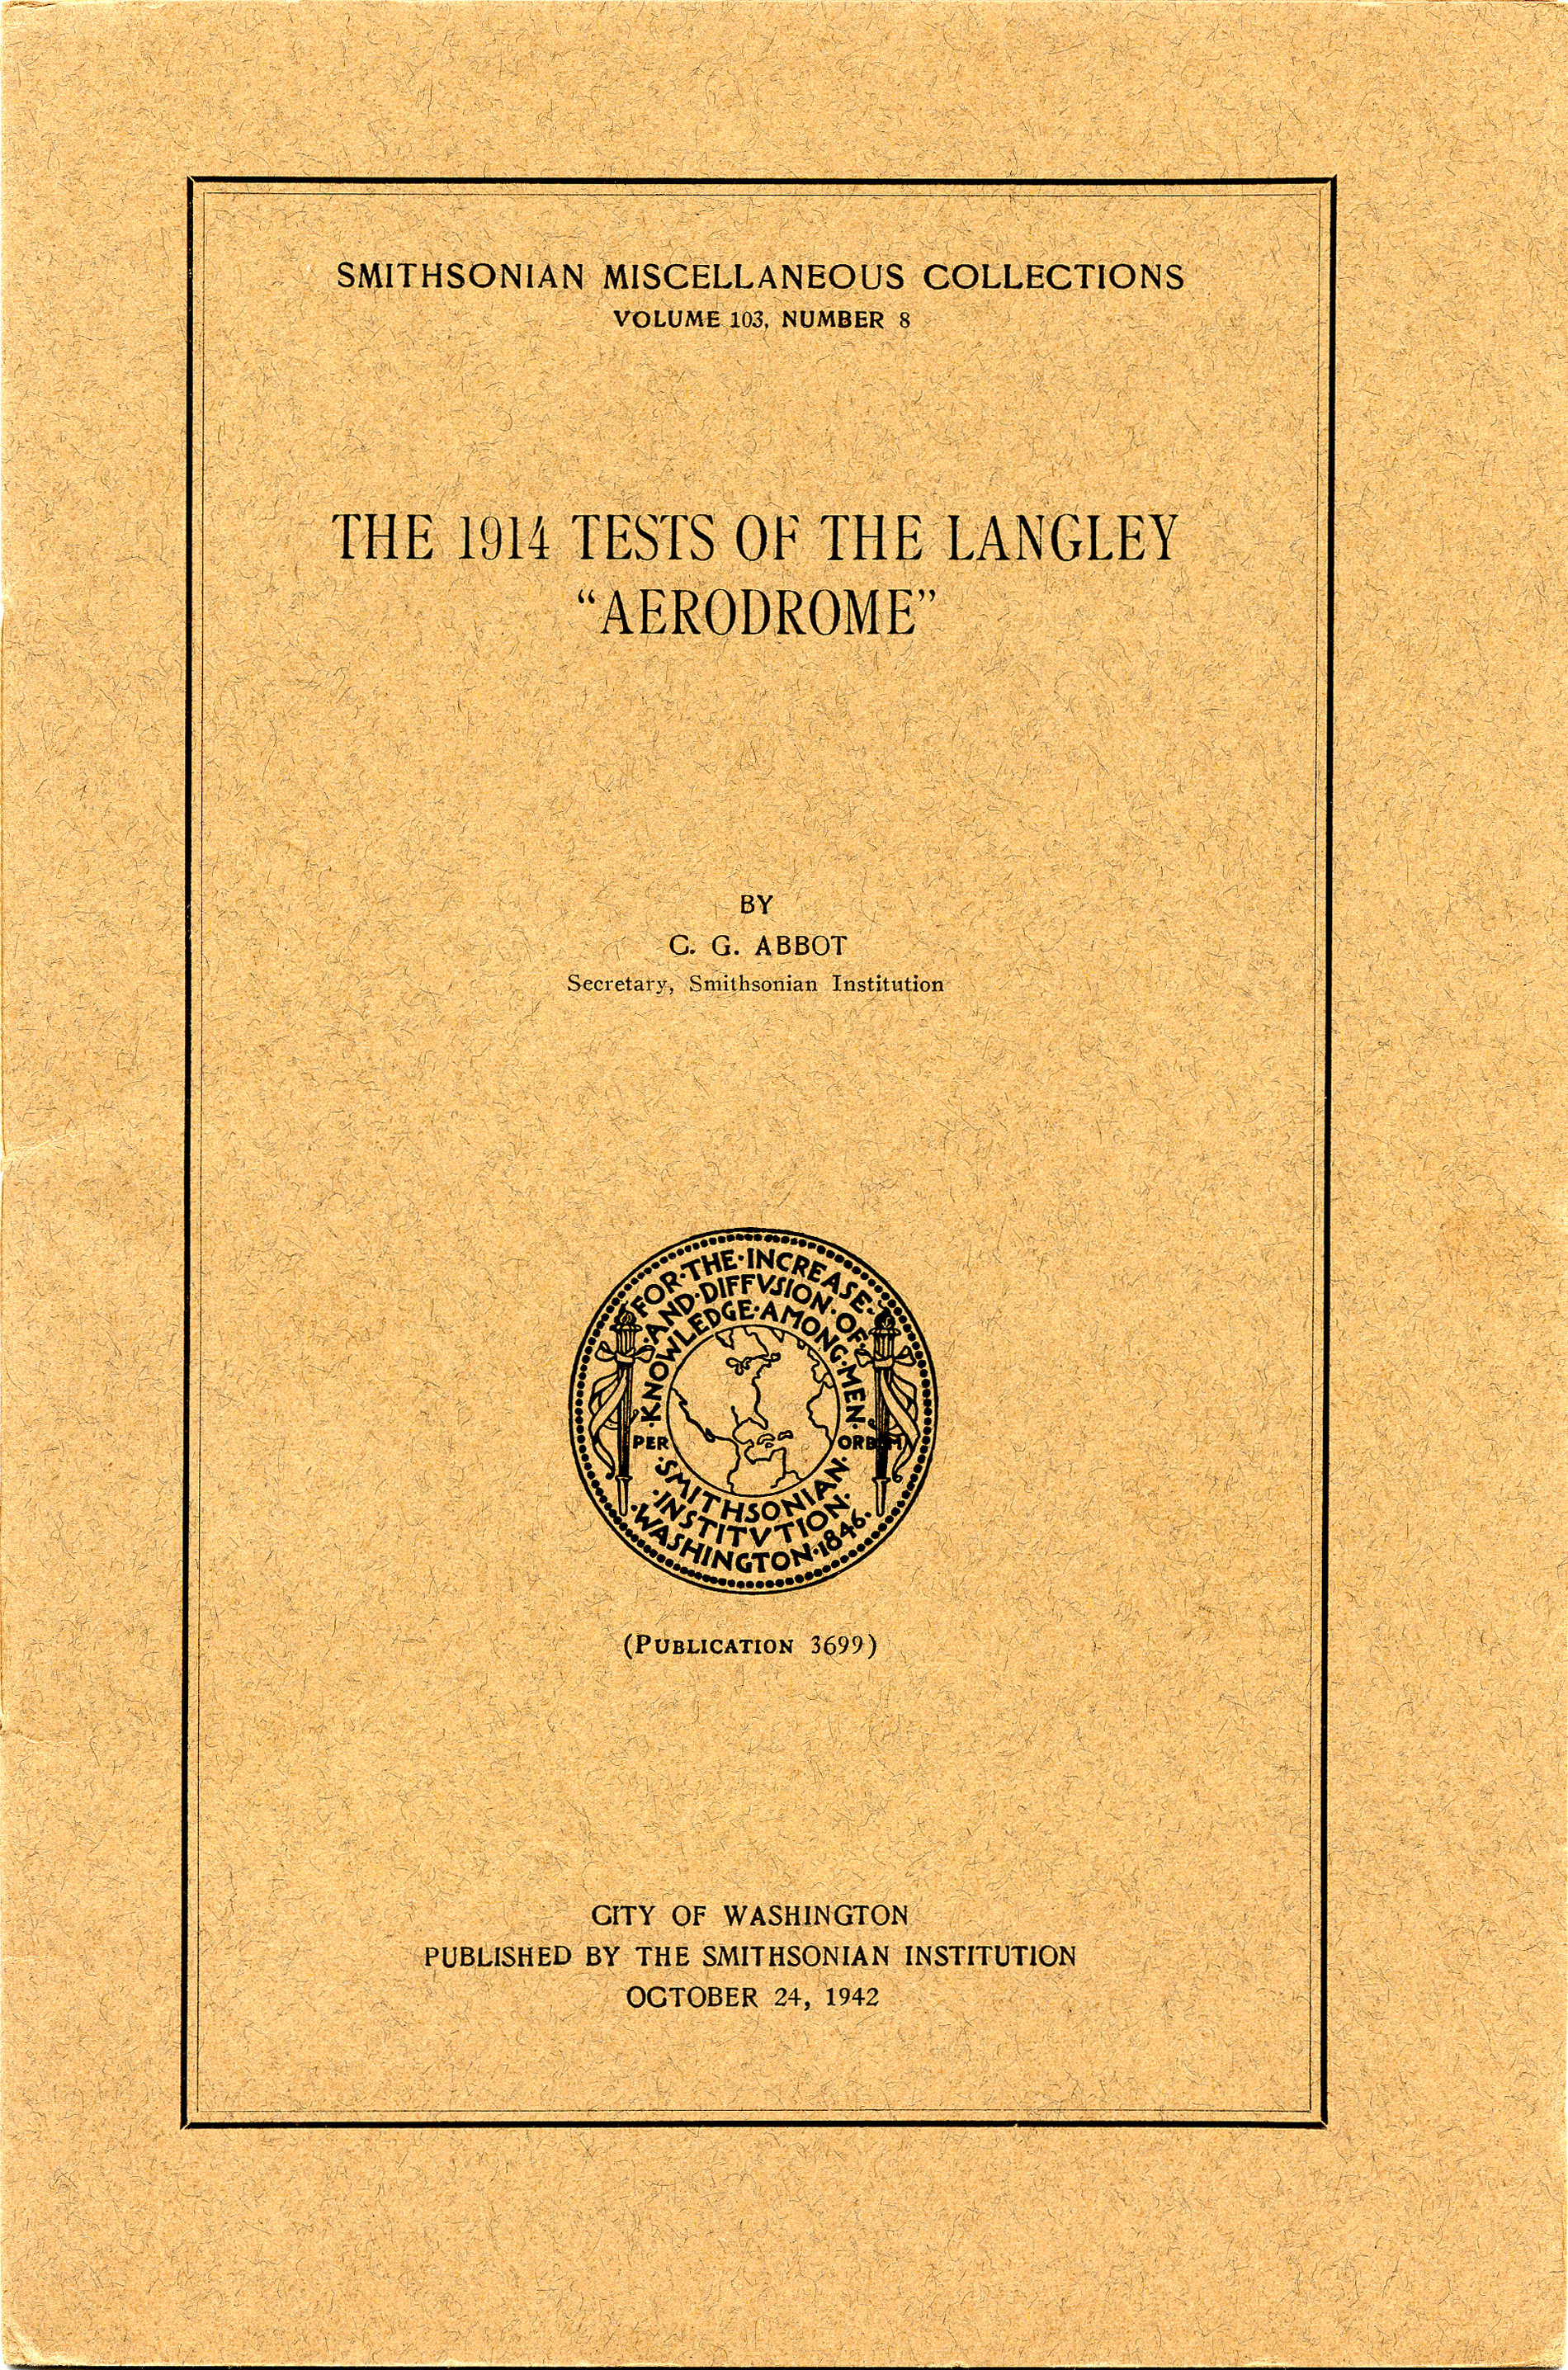 Smithsonian 1942 annual report